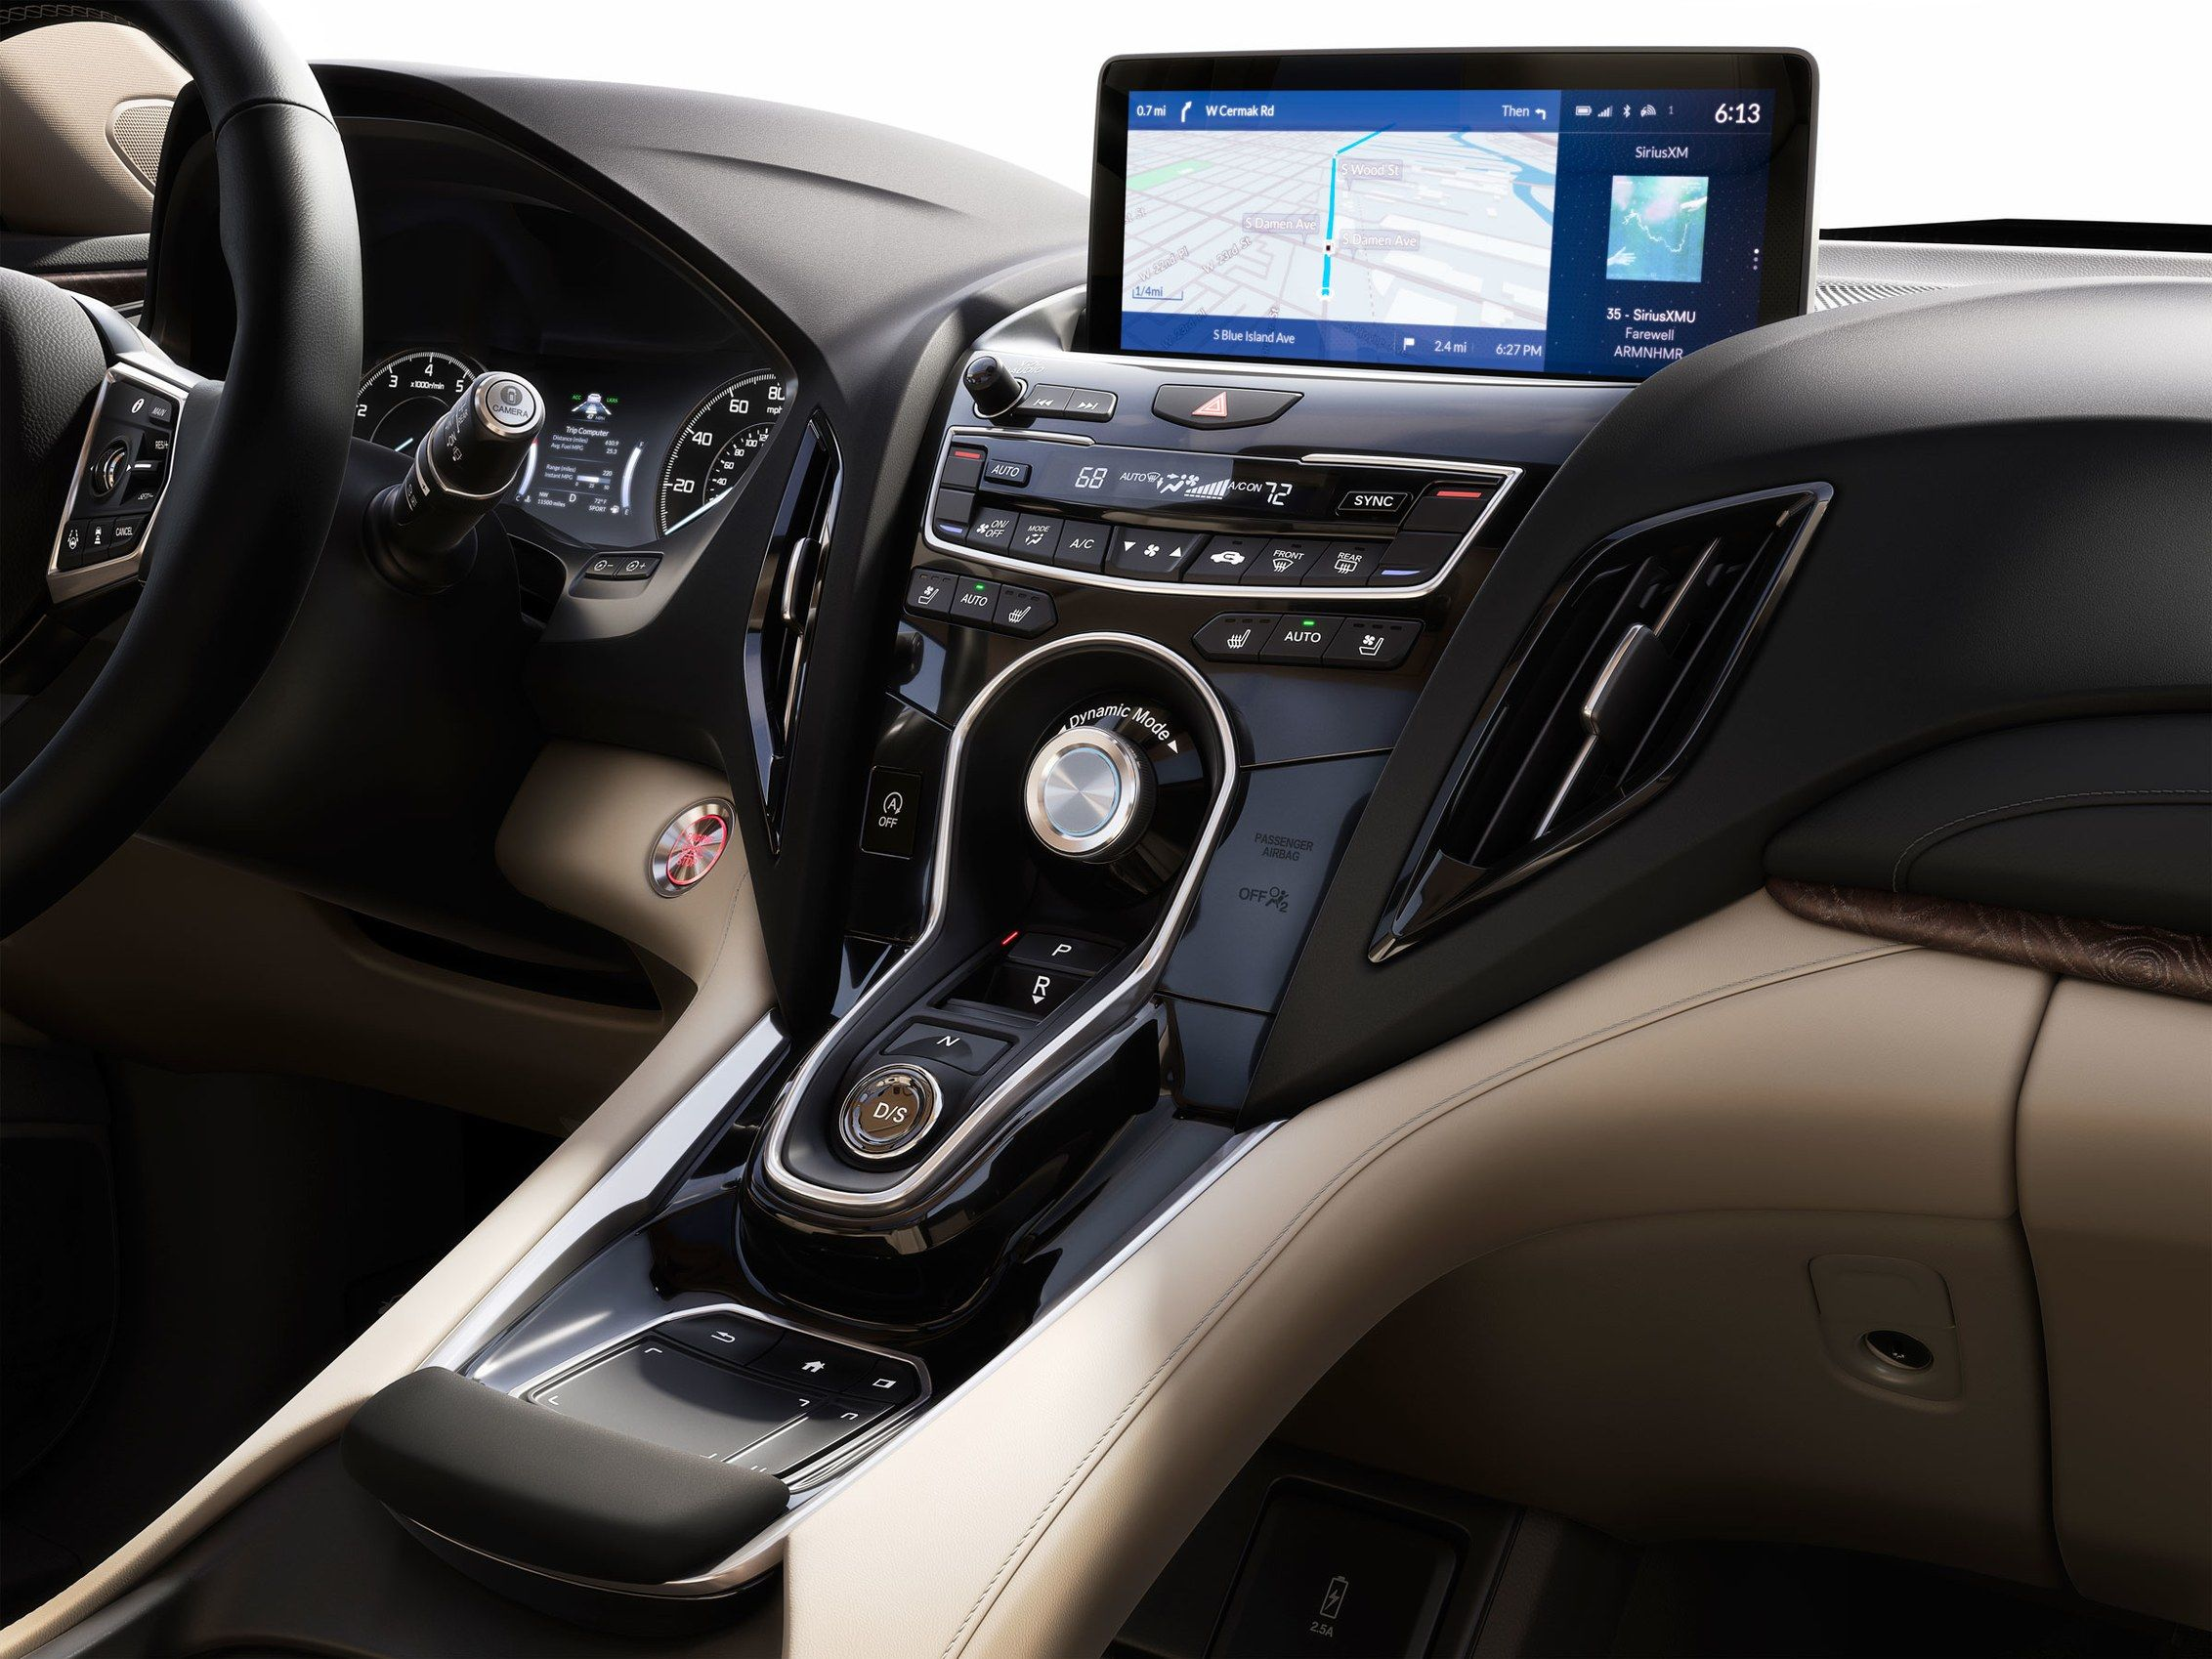 Acura S Rdx Comes With An Easy To Use Infotainment System Acura Rdx Acura Mdx Acura Tlx